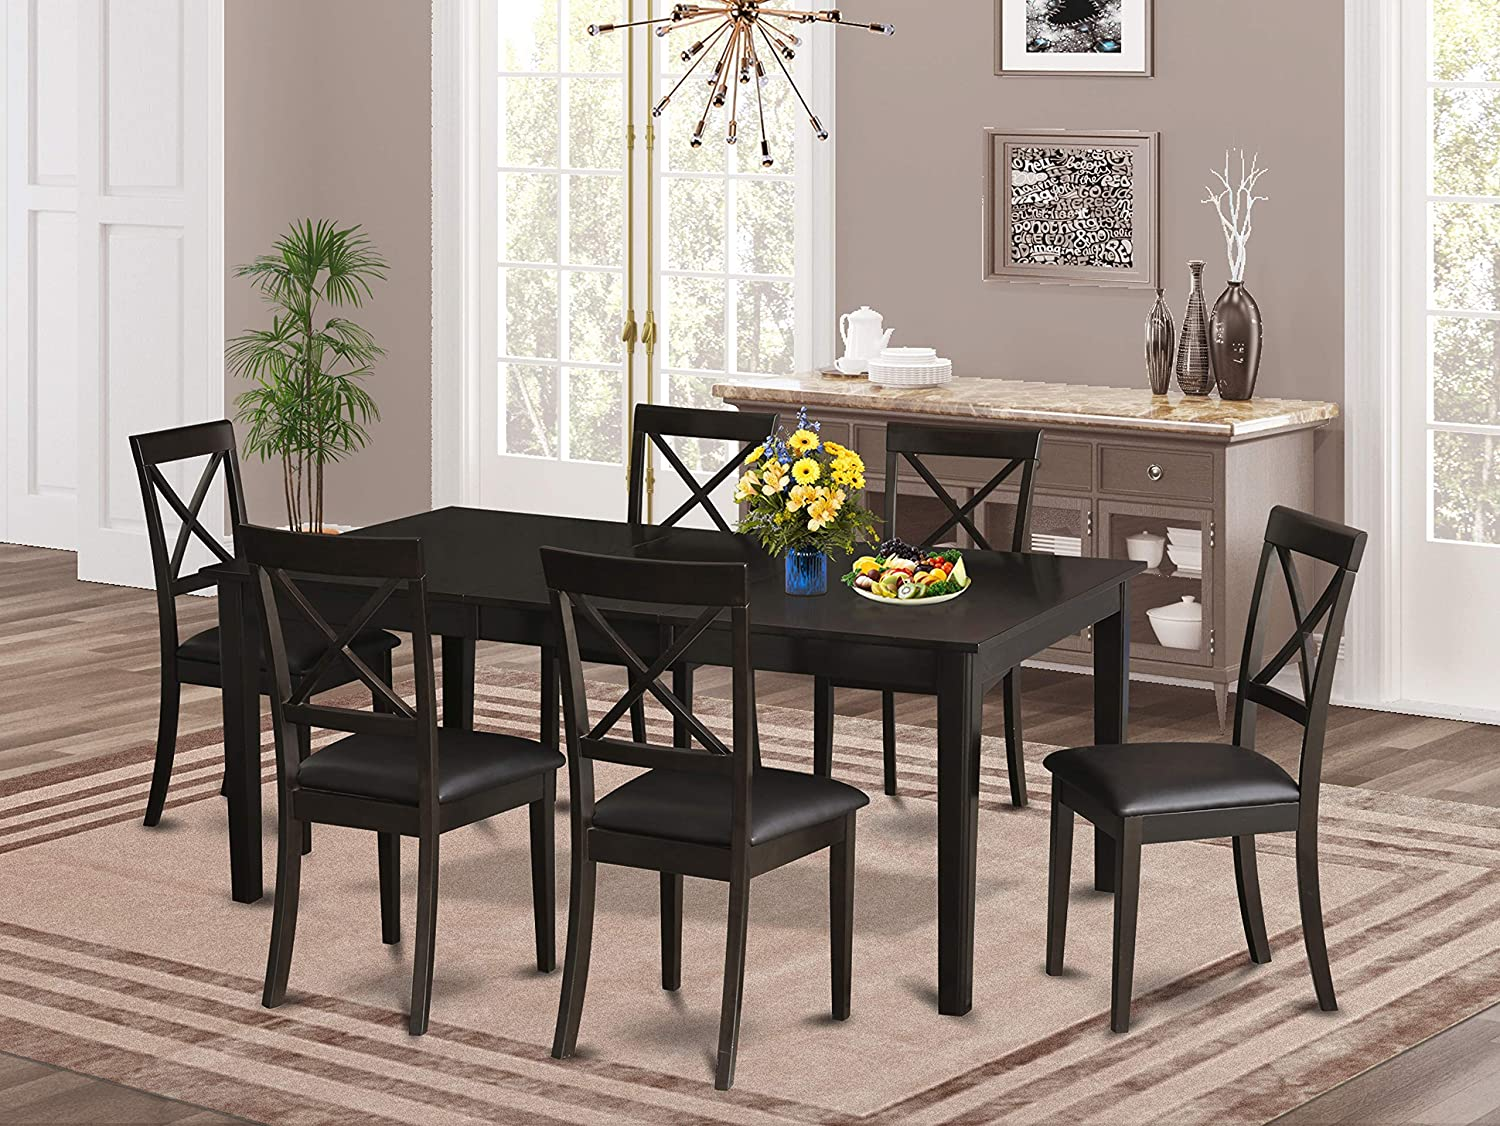 East West Furniture HEBO7-CaP-LC 7-Piece Dining Room Set Included a Self-Storing Butterfly Leaf Wooden Dining Room Table and 6 Dining Room Chairs - Faux Leather Dining Chair Seat & X-Back - Cappuccino Finish